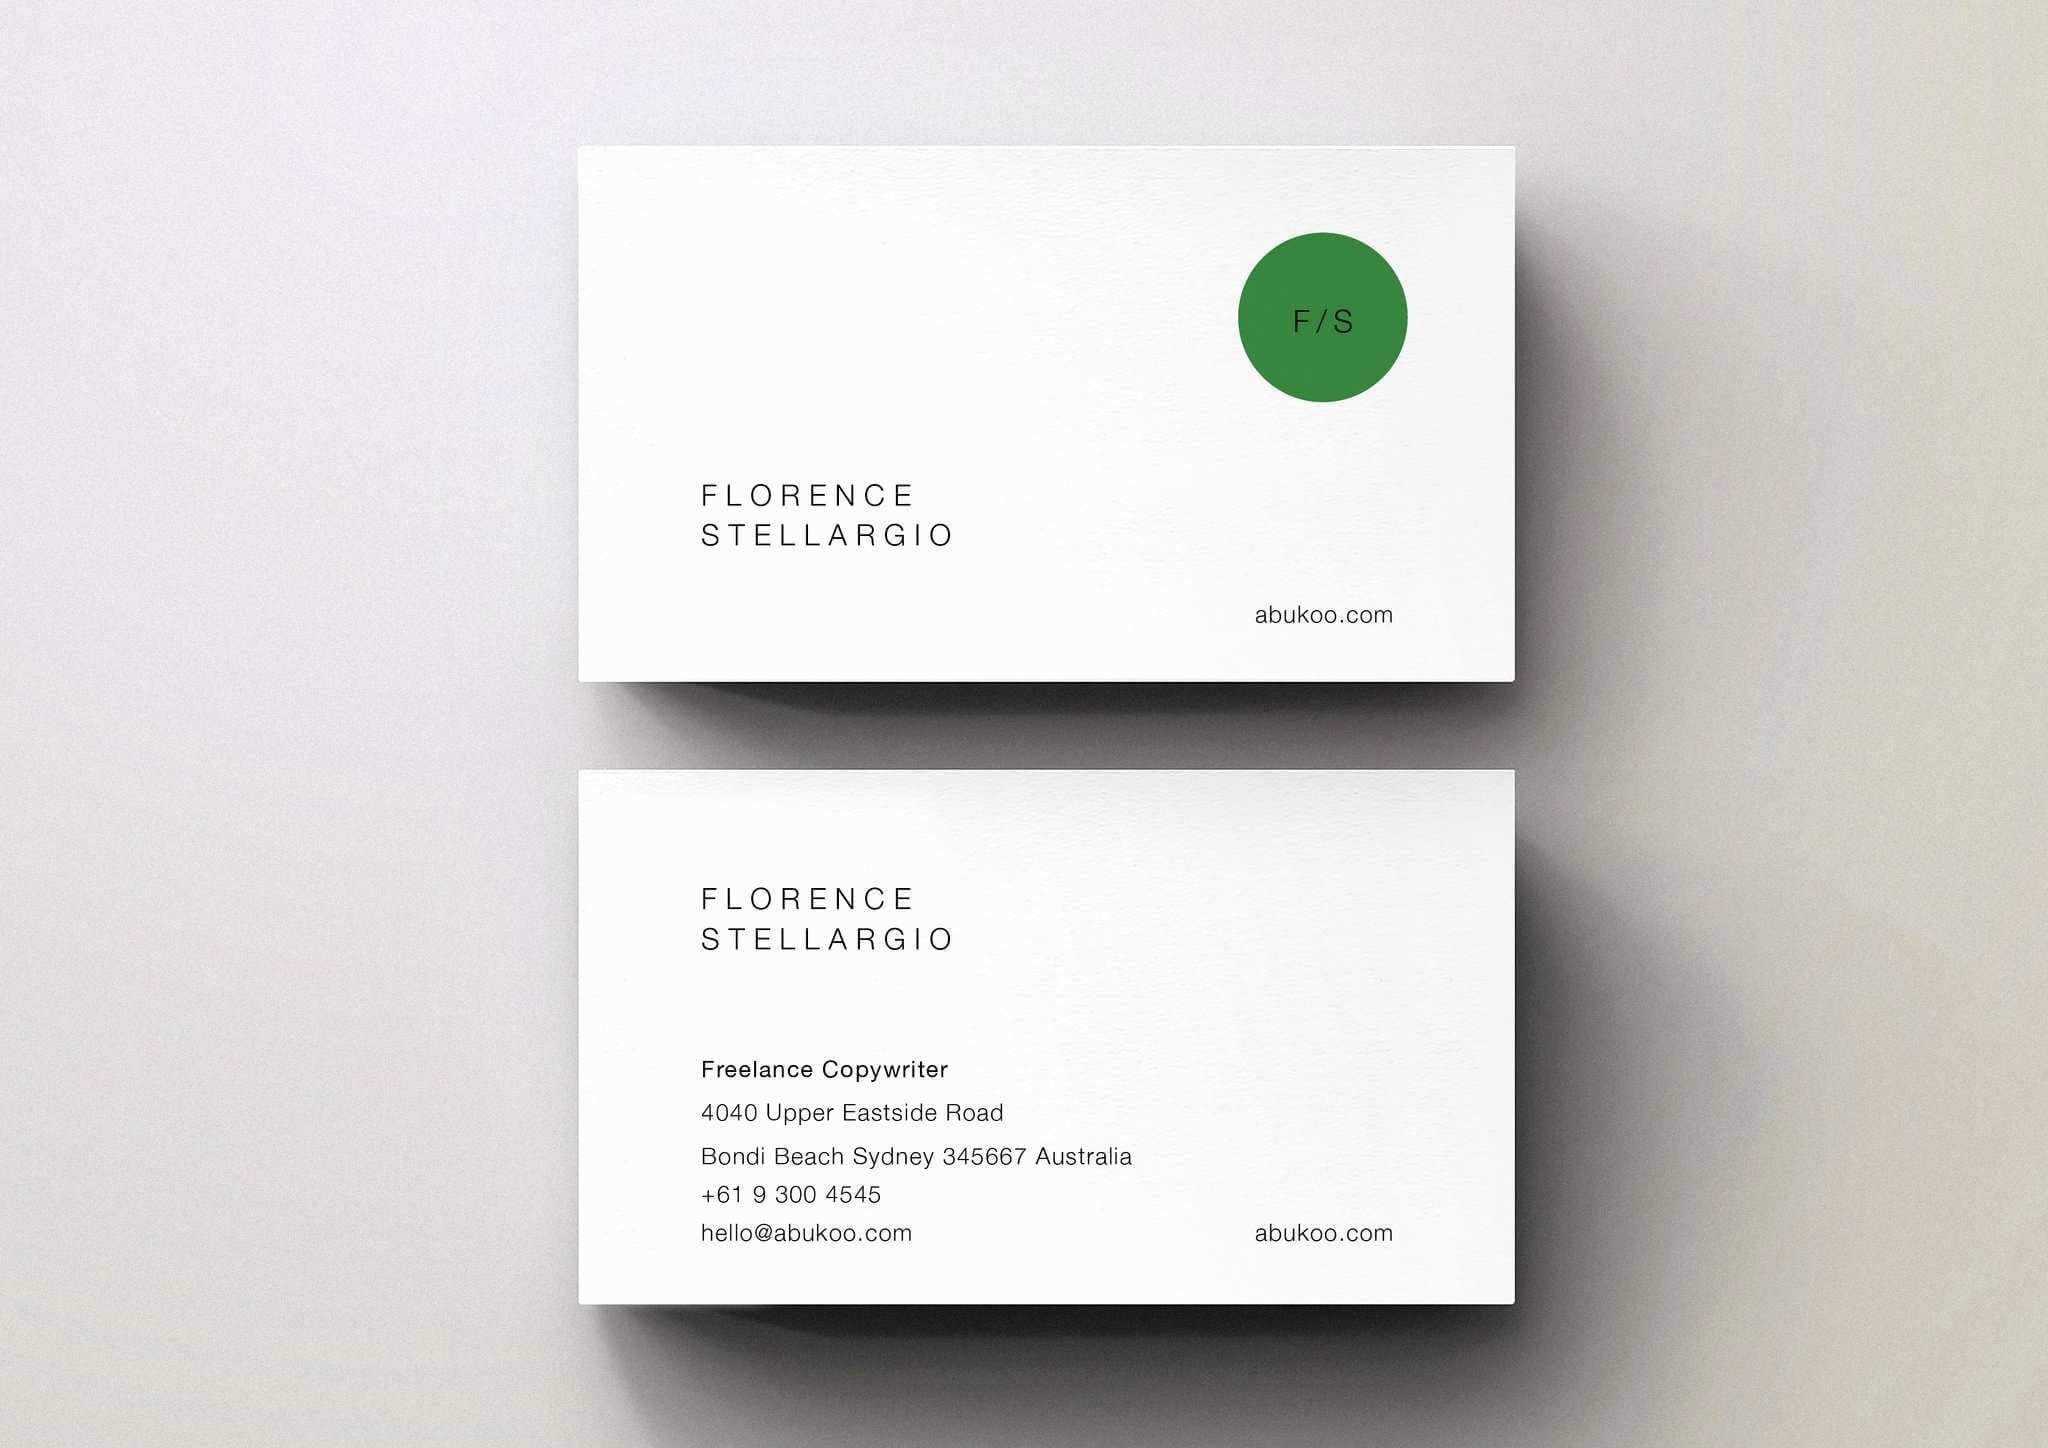 Freelance Business Card Template Physician Assistant Student With Freelance Business Card Template